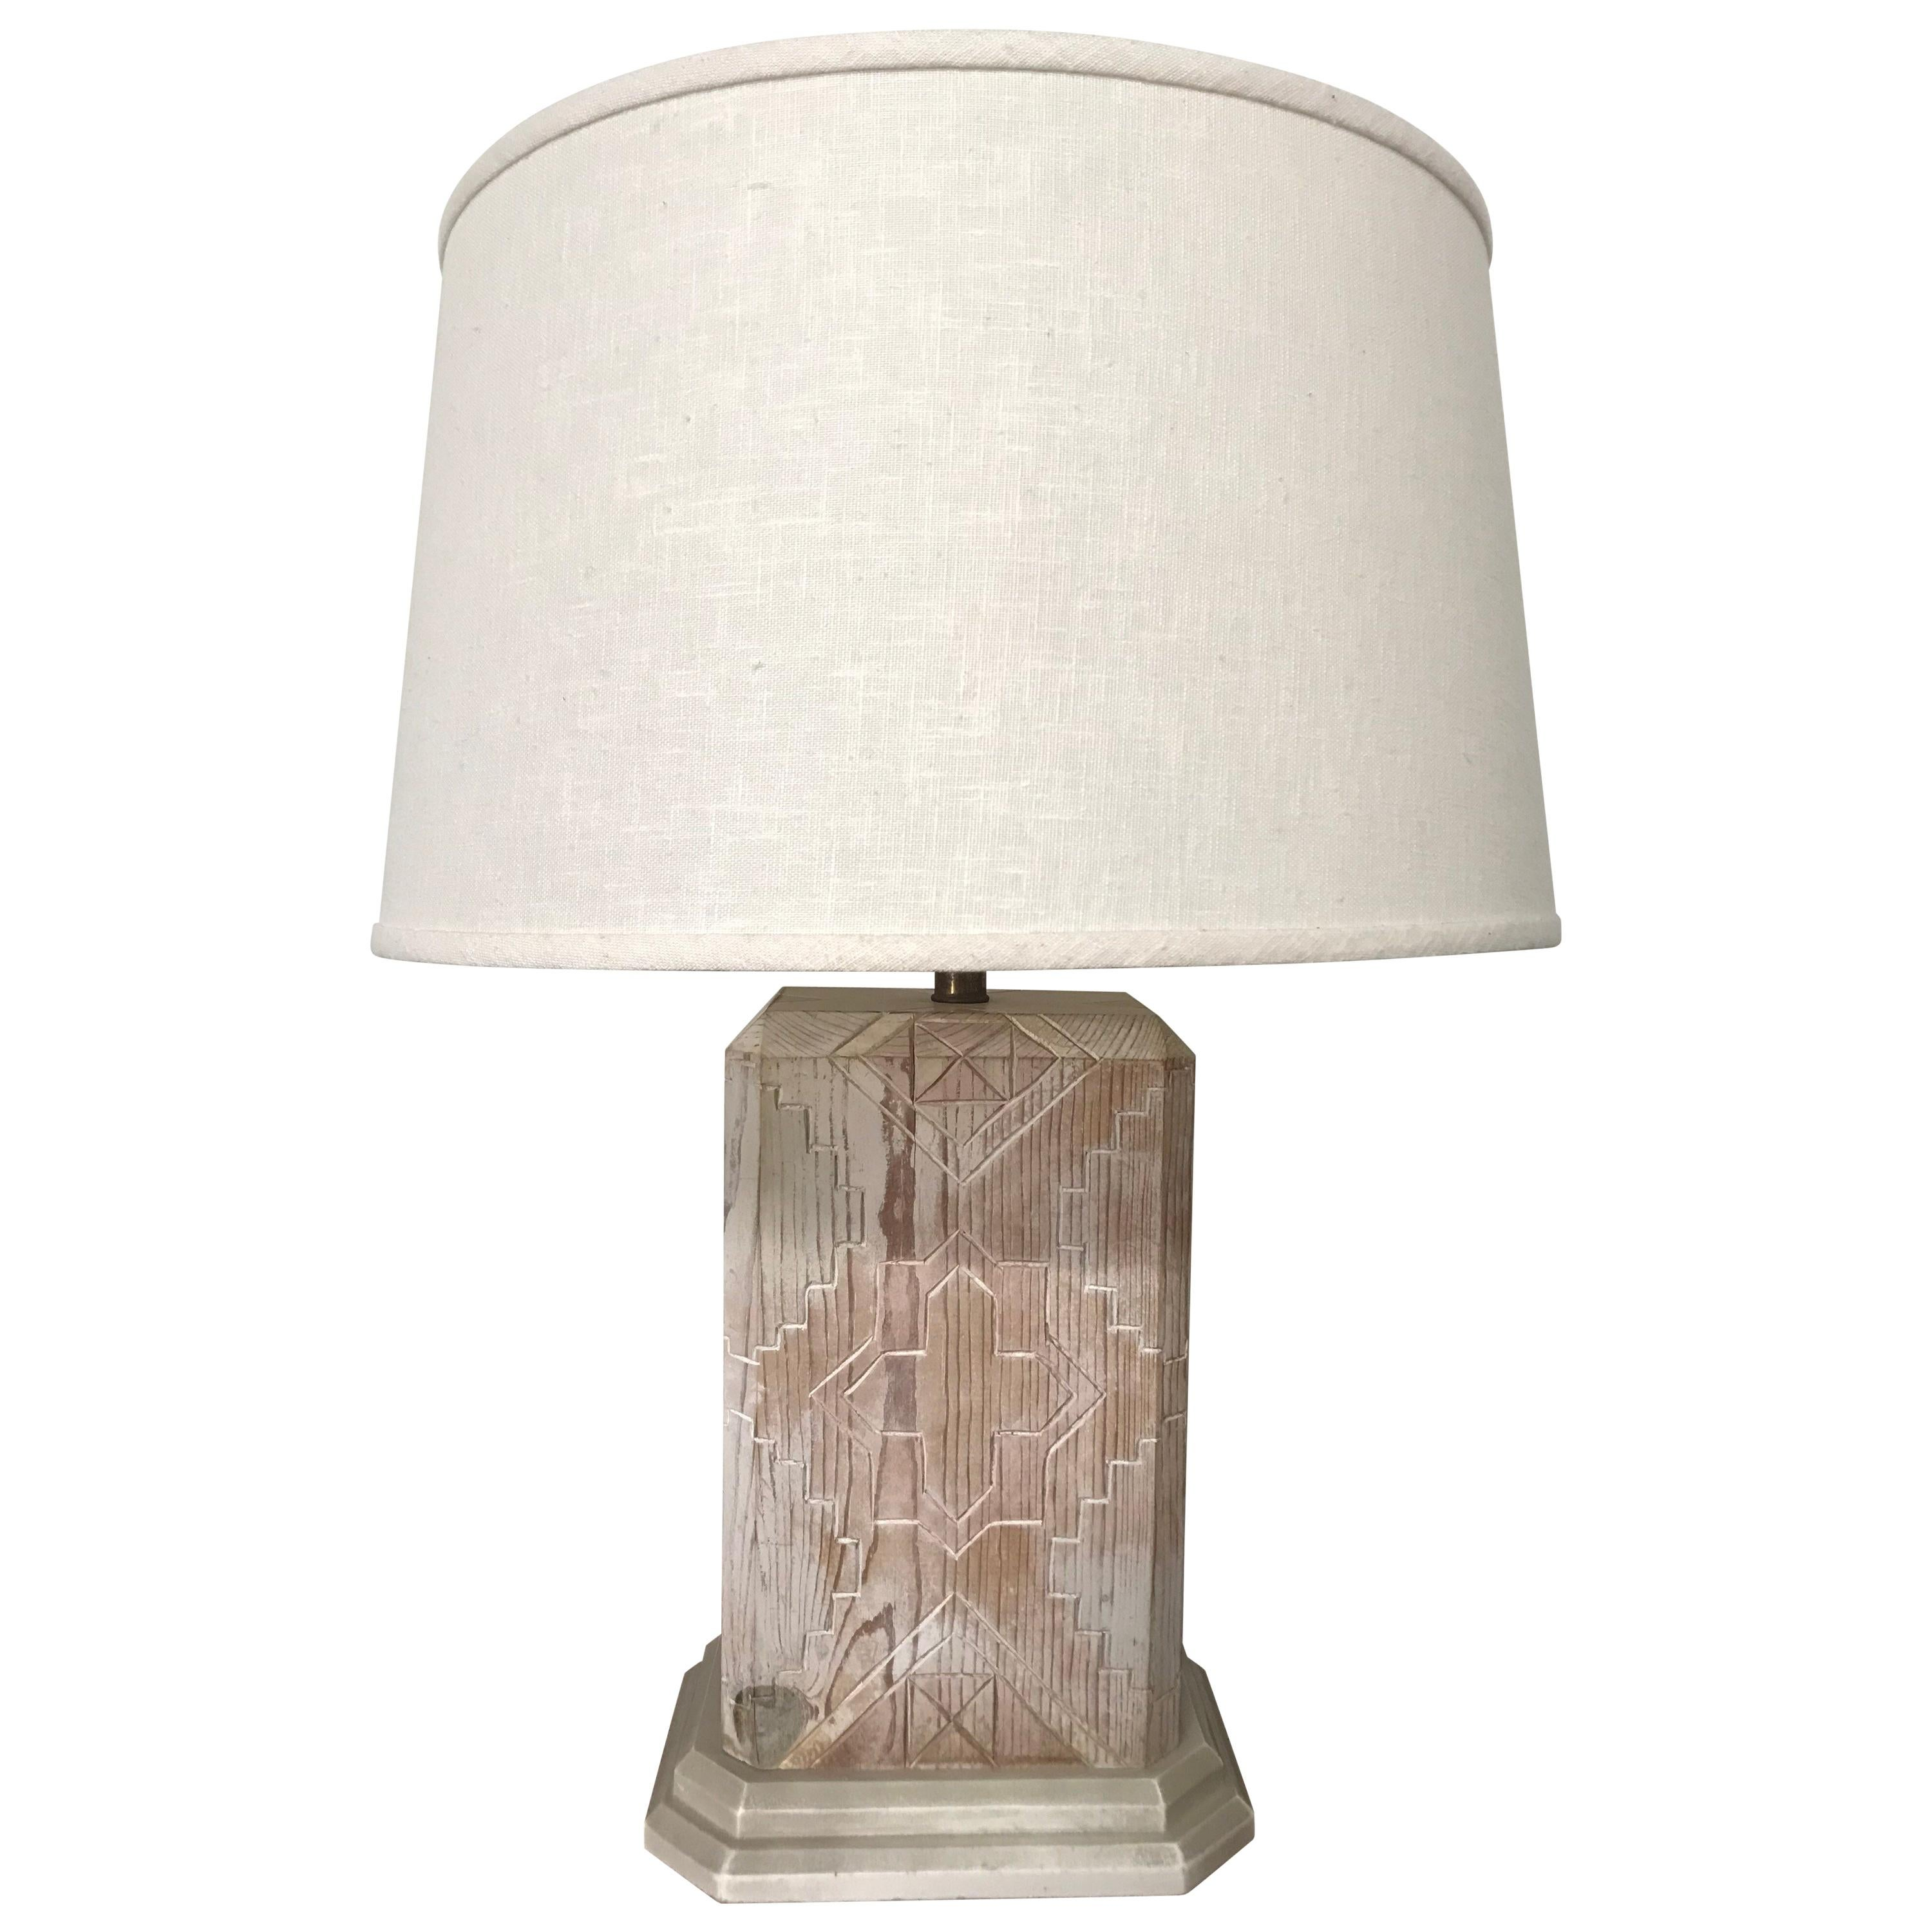 Incroyable Southwestern Style Cerused White Washed Oak Table Lamp By Sarreid Ltd